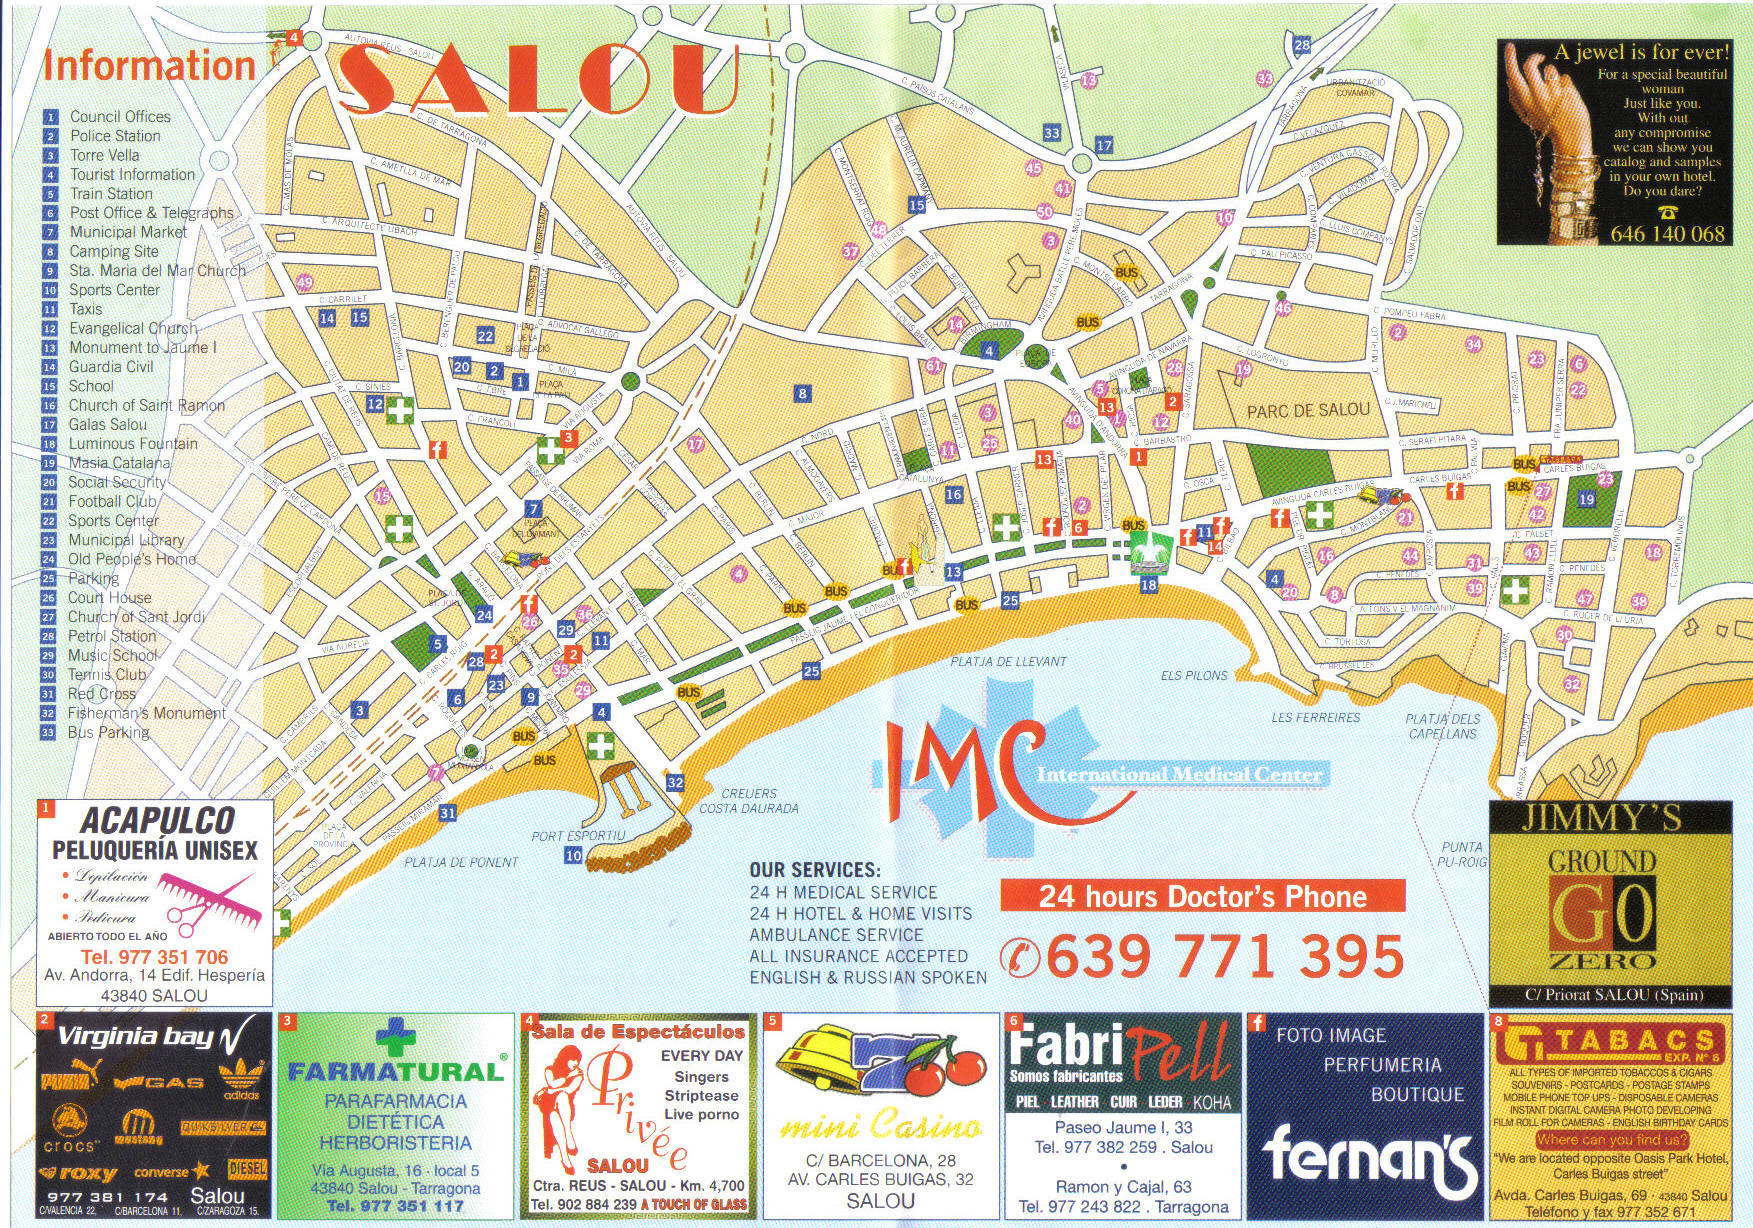 Map Of Spain Showing Salou.Salou Spain Pictures And Videos And News Citiestips Com